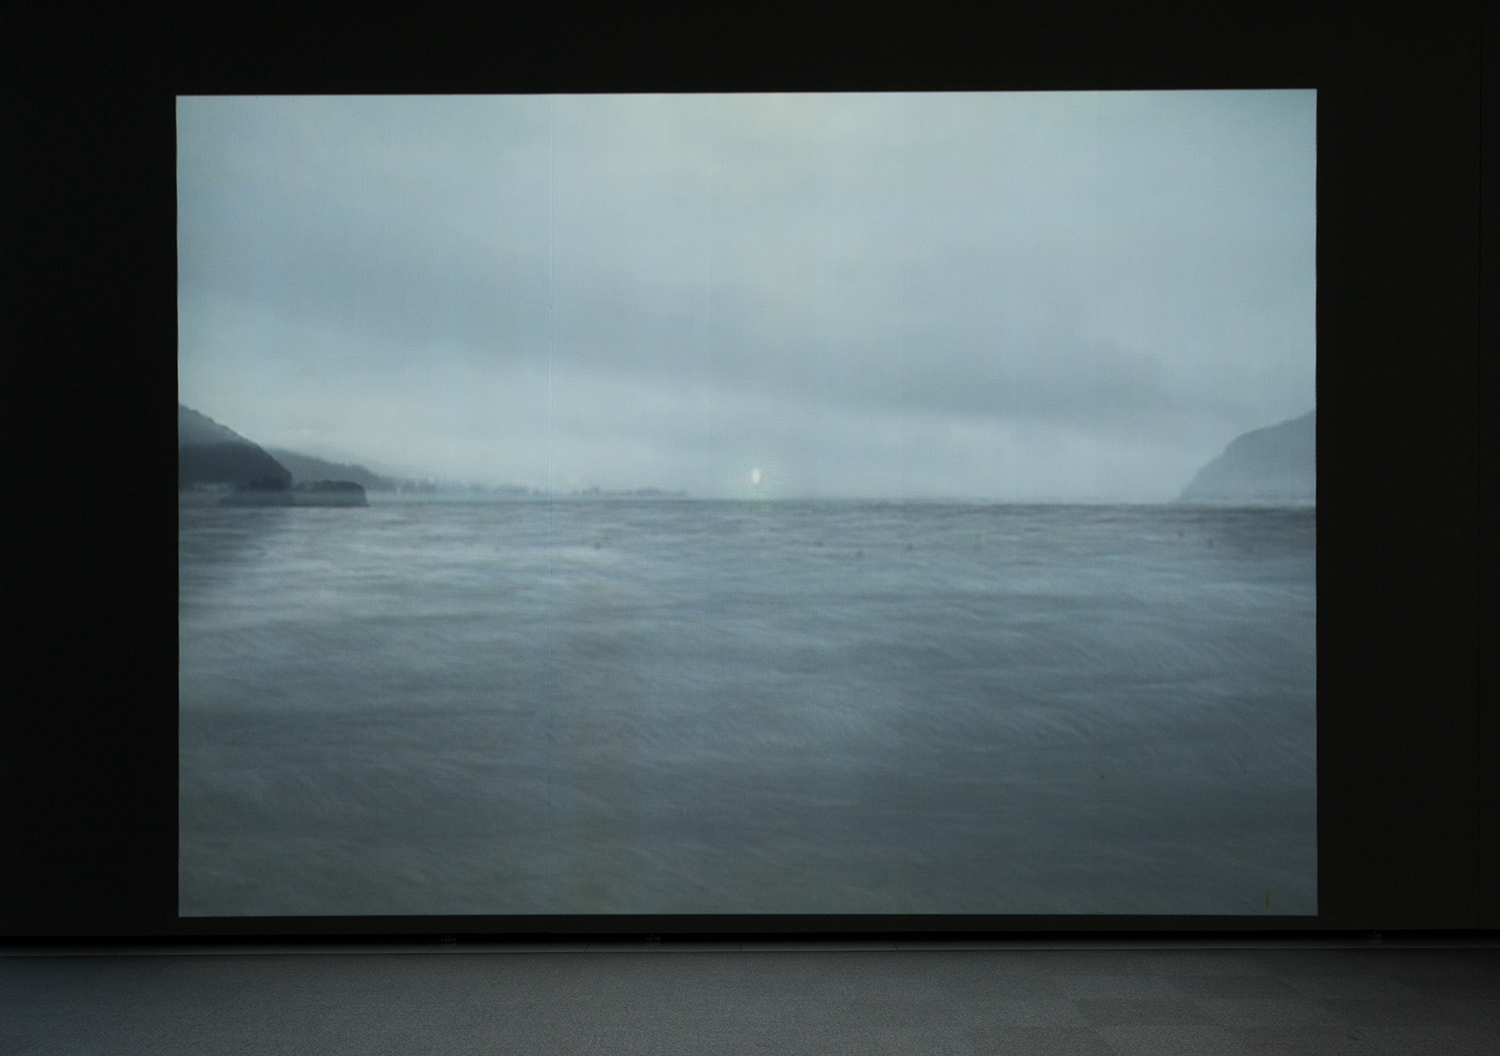 <b>波/遠景の座標)|wave/coordinate of distance view</b> プロジェクター、メディアプレイヤー|projector, media player 2009-14